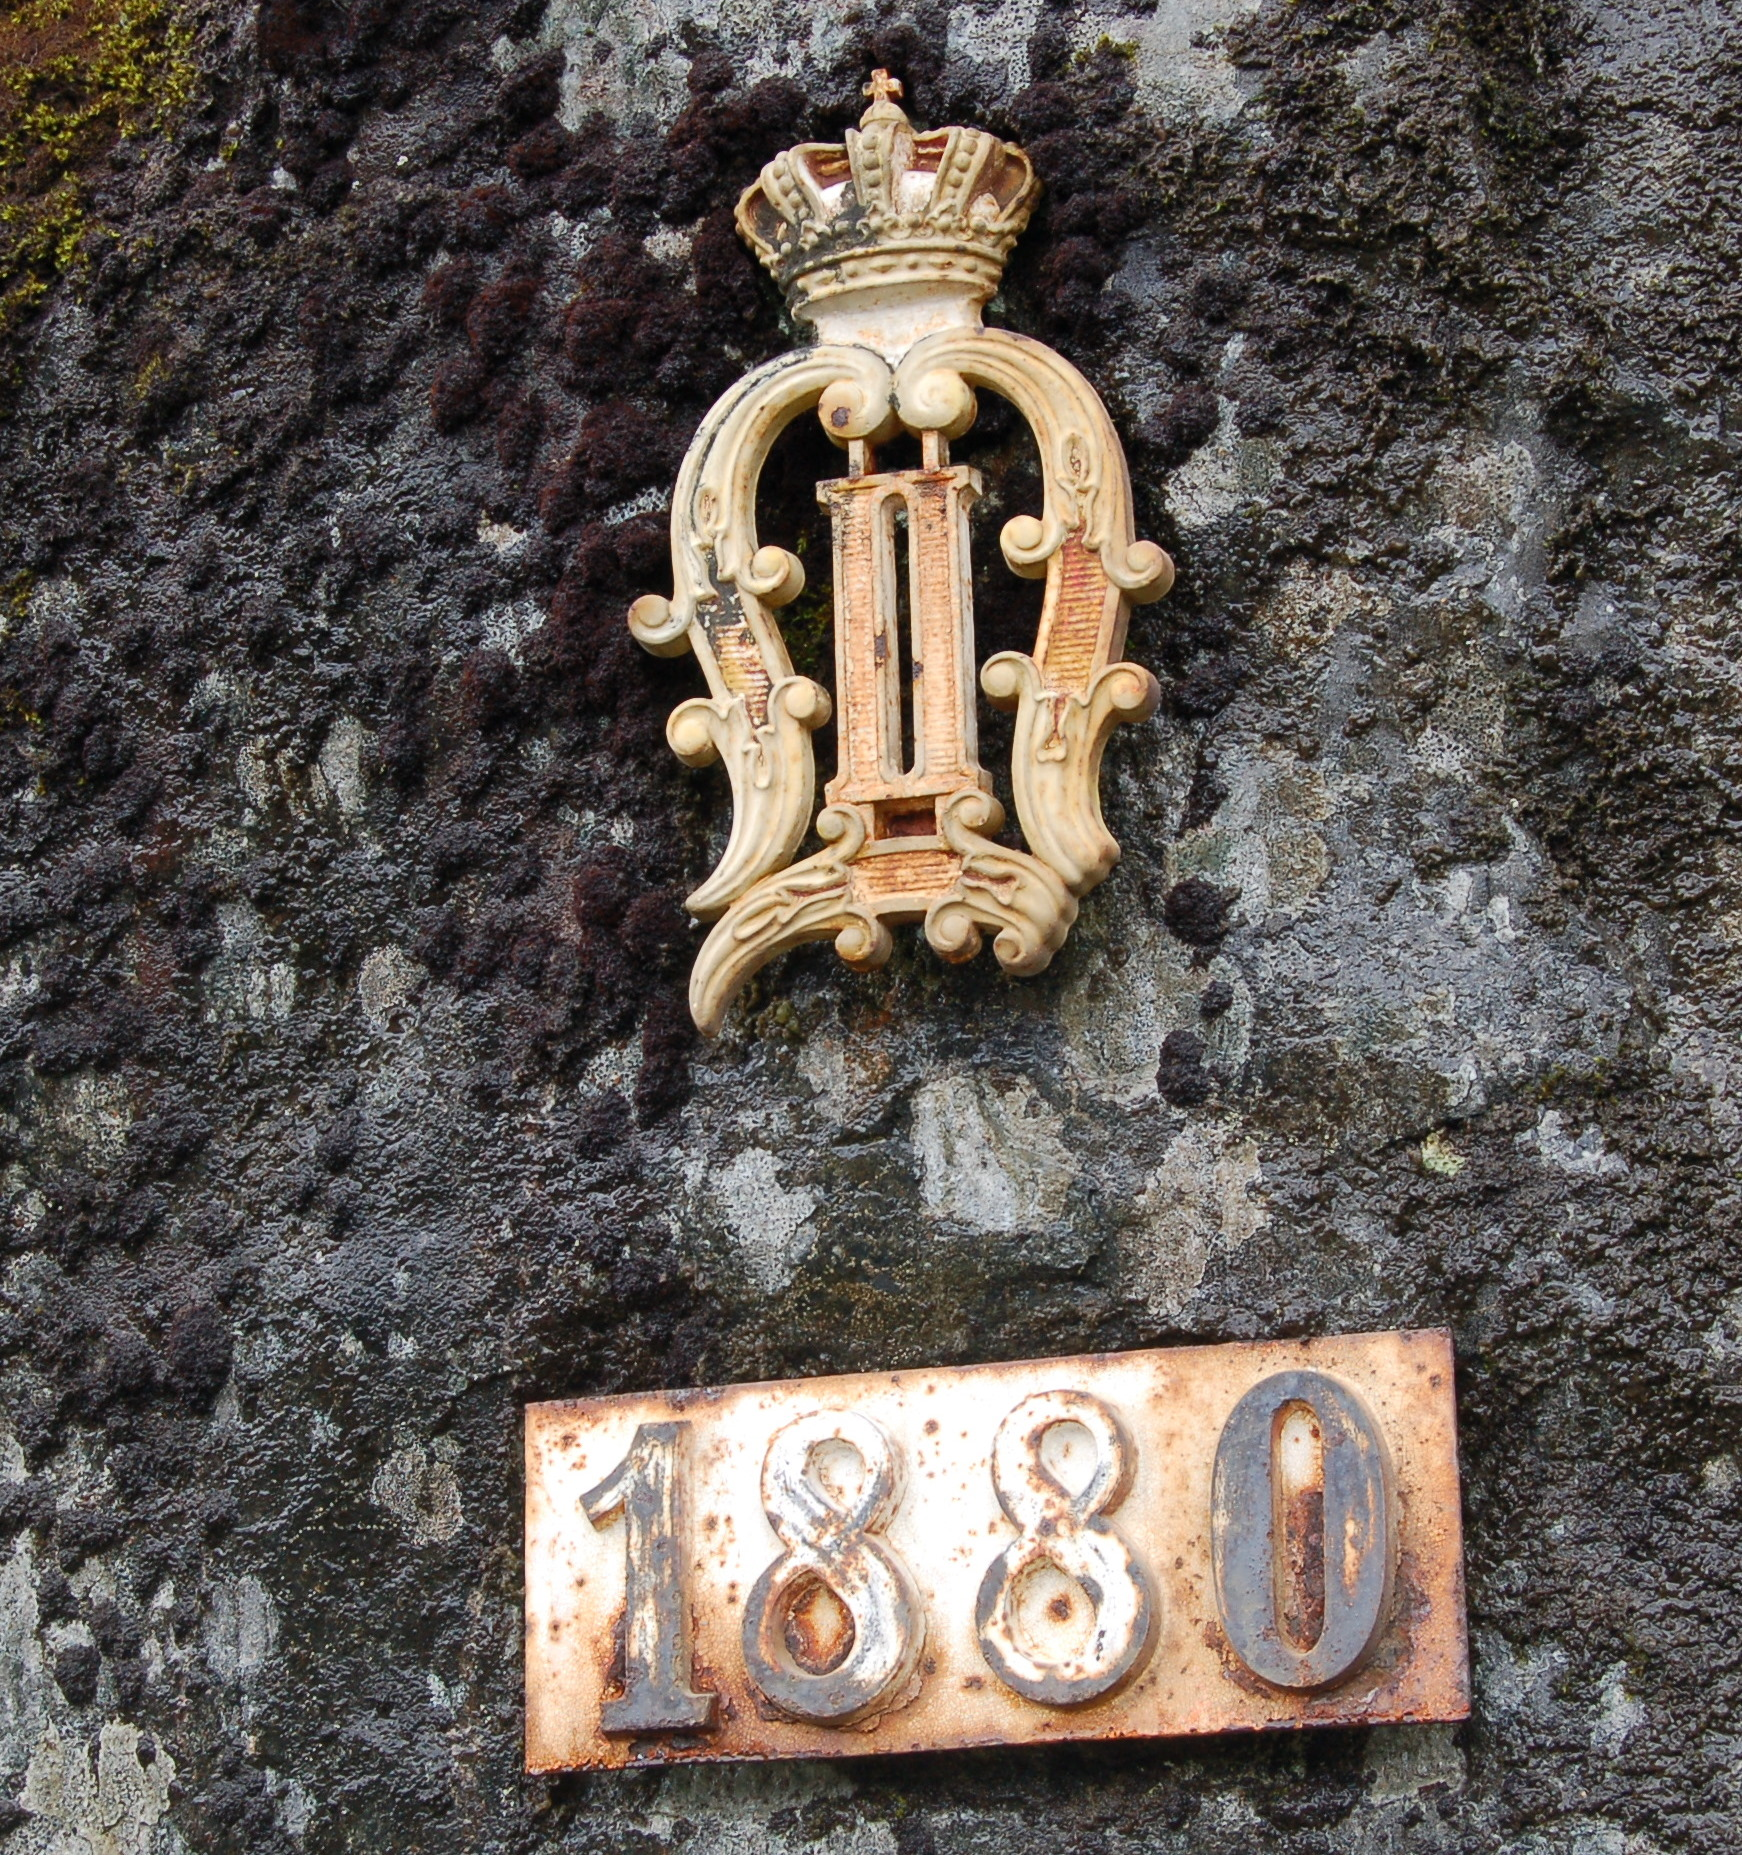 Arnstein Rønning: Oscar II's monogram between Kongsberg and Svene (August 20, 2009